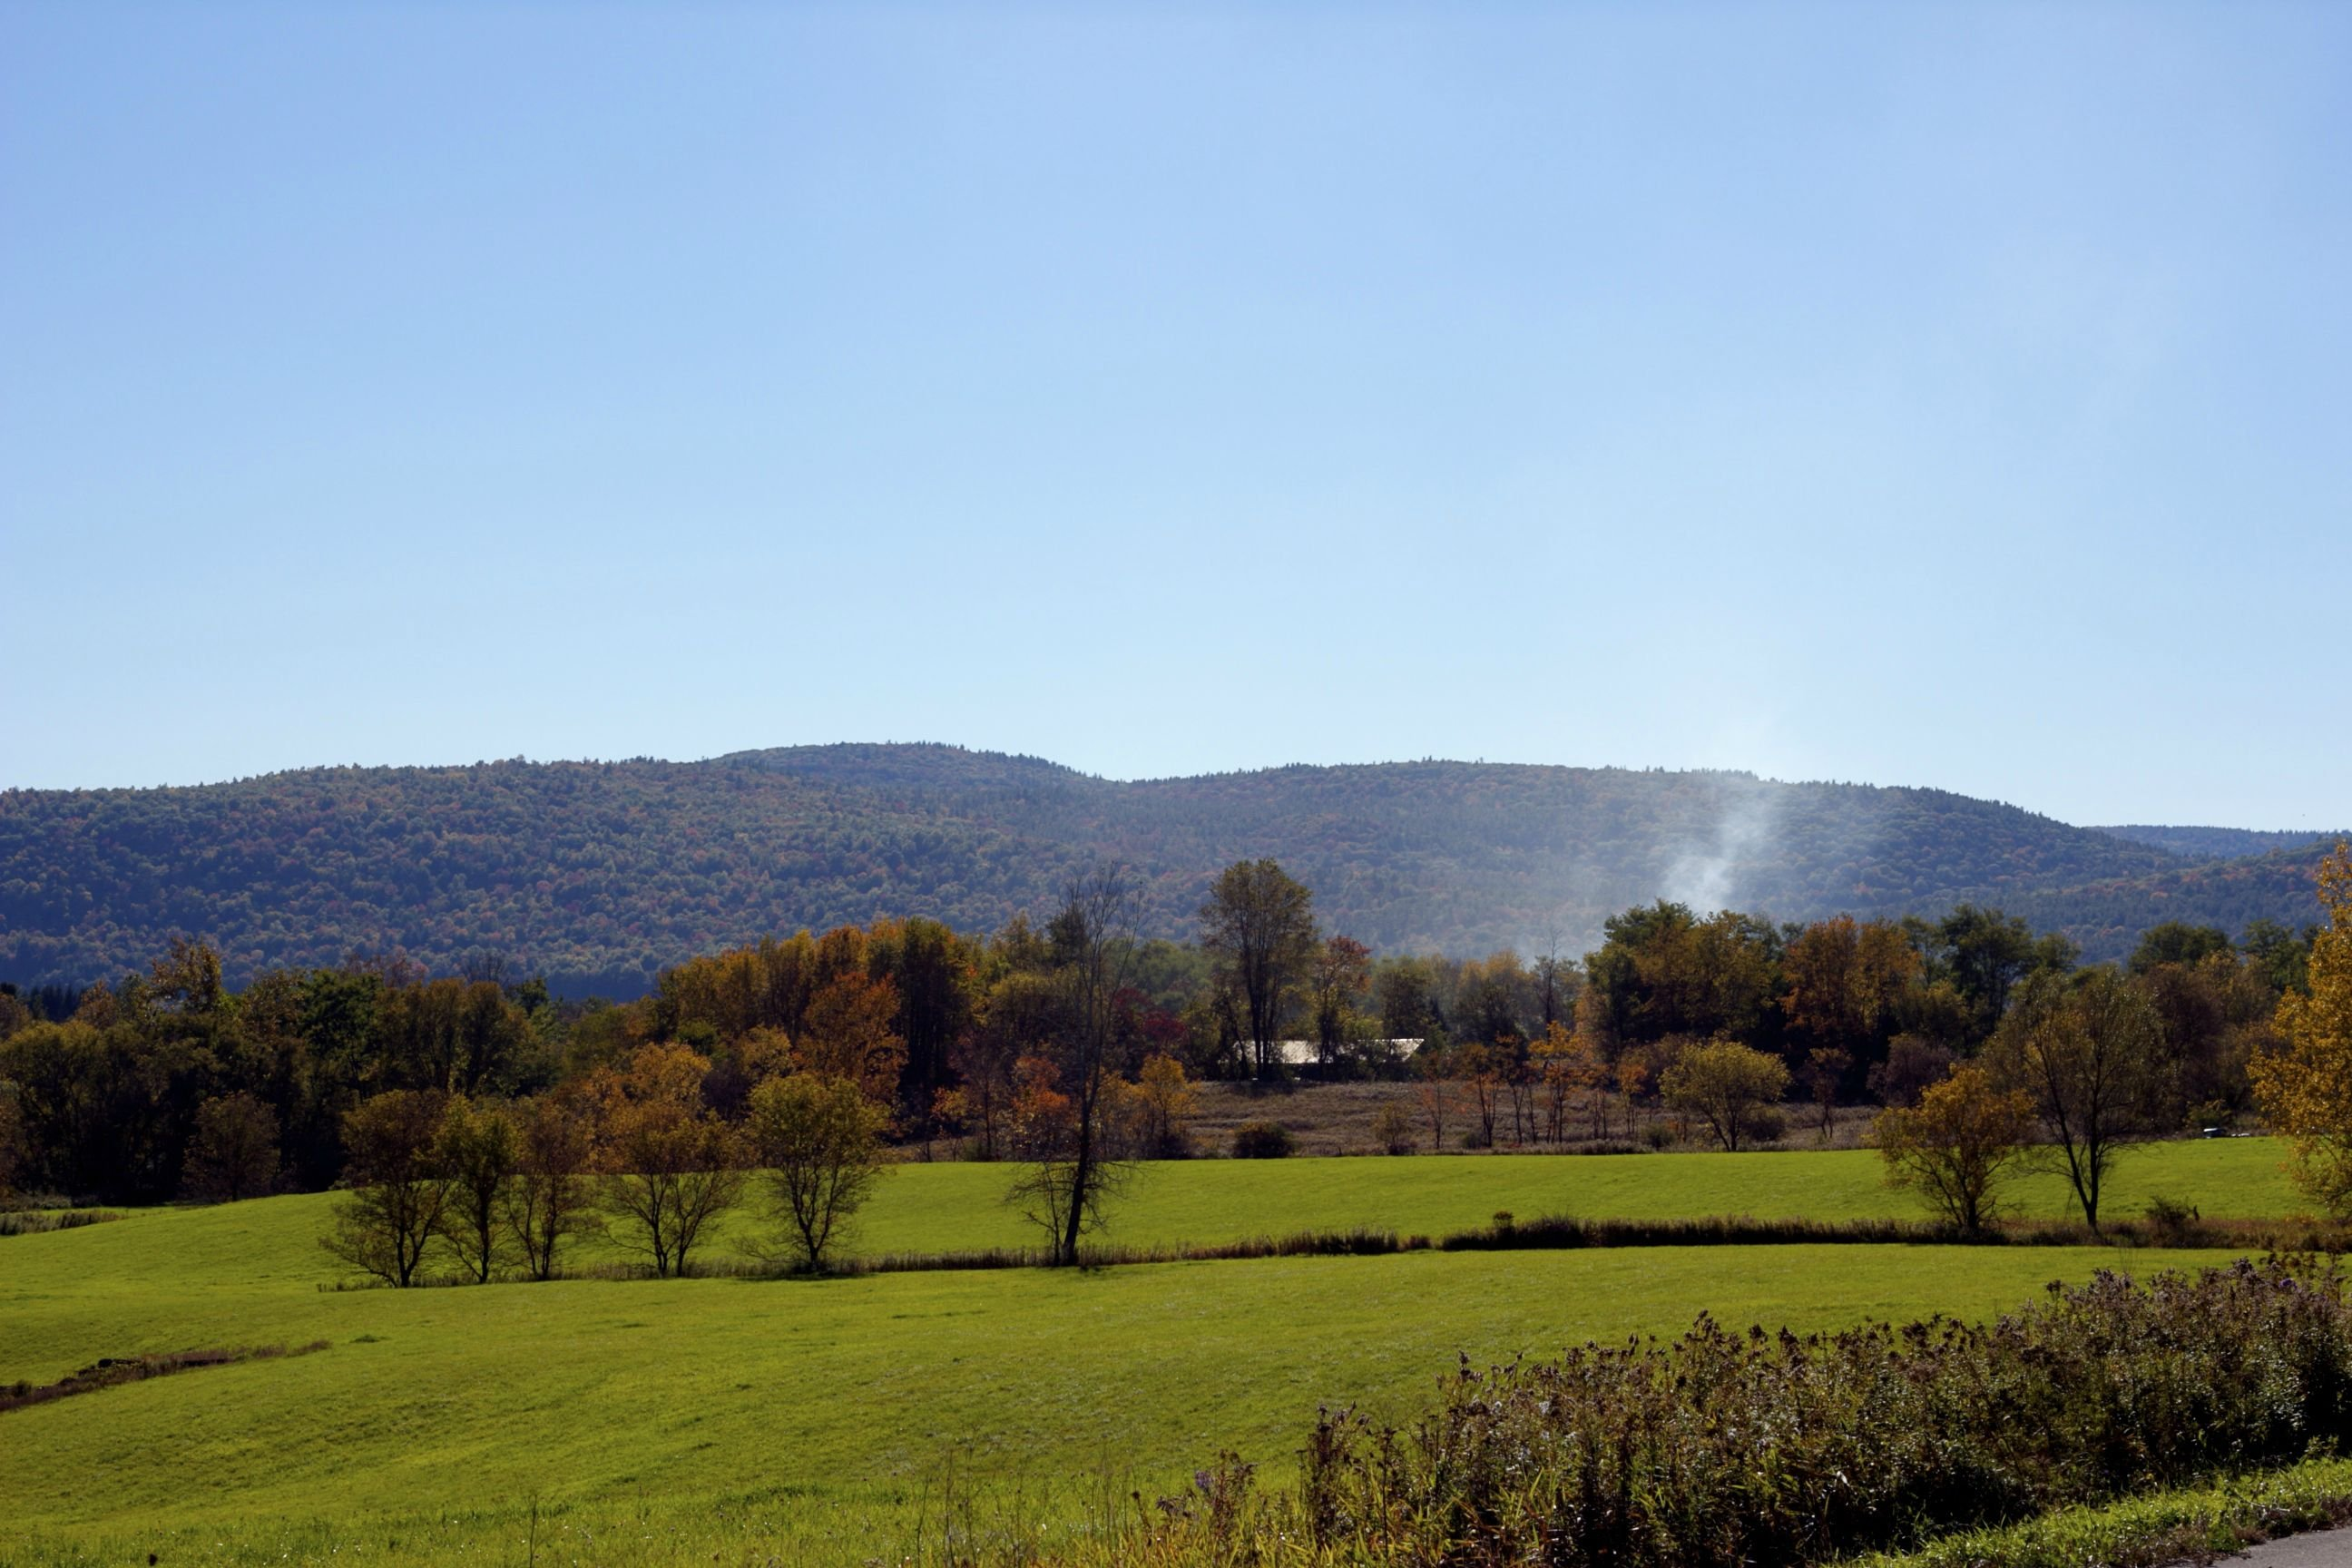 Vermont 4k Wallpapers For Your Desktop Or Mobile Screen Free And Easy To Download